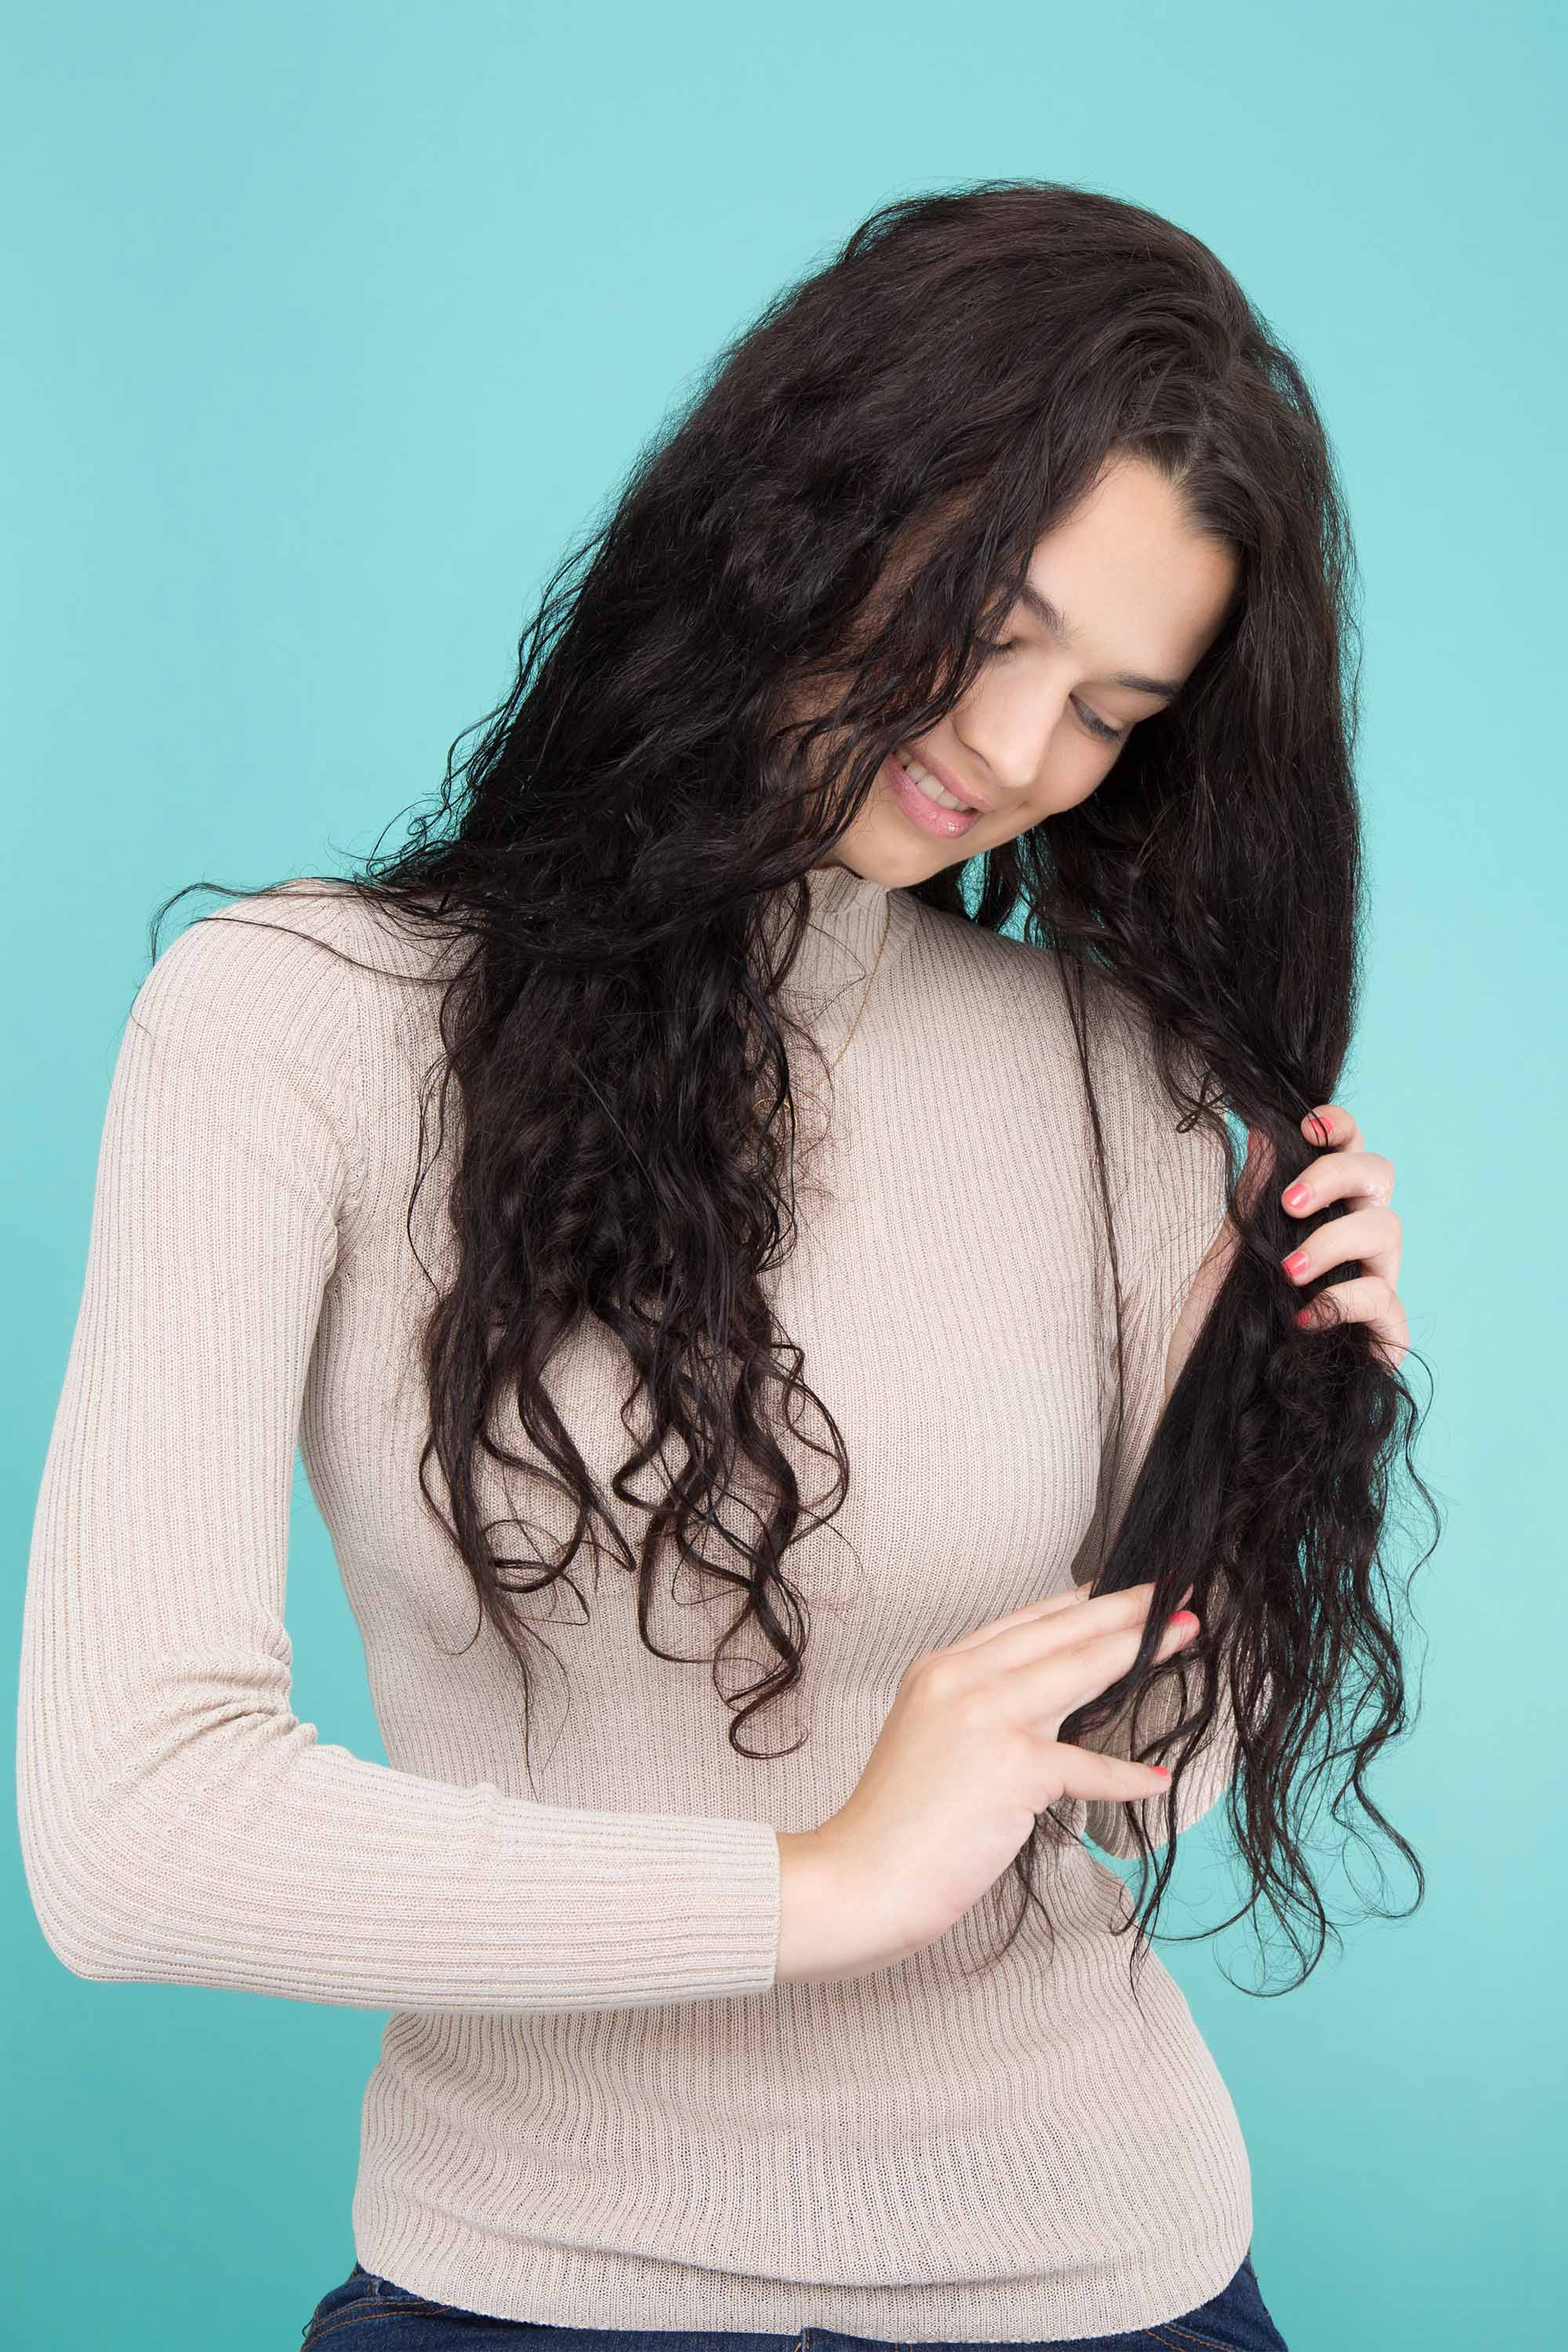 The ath dry hair guide learn how to care for your dry damaged hair - Easy hair care solutions ...